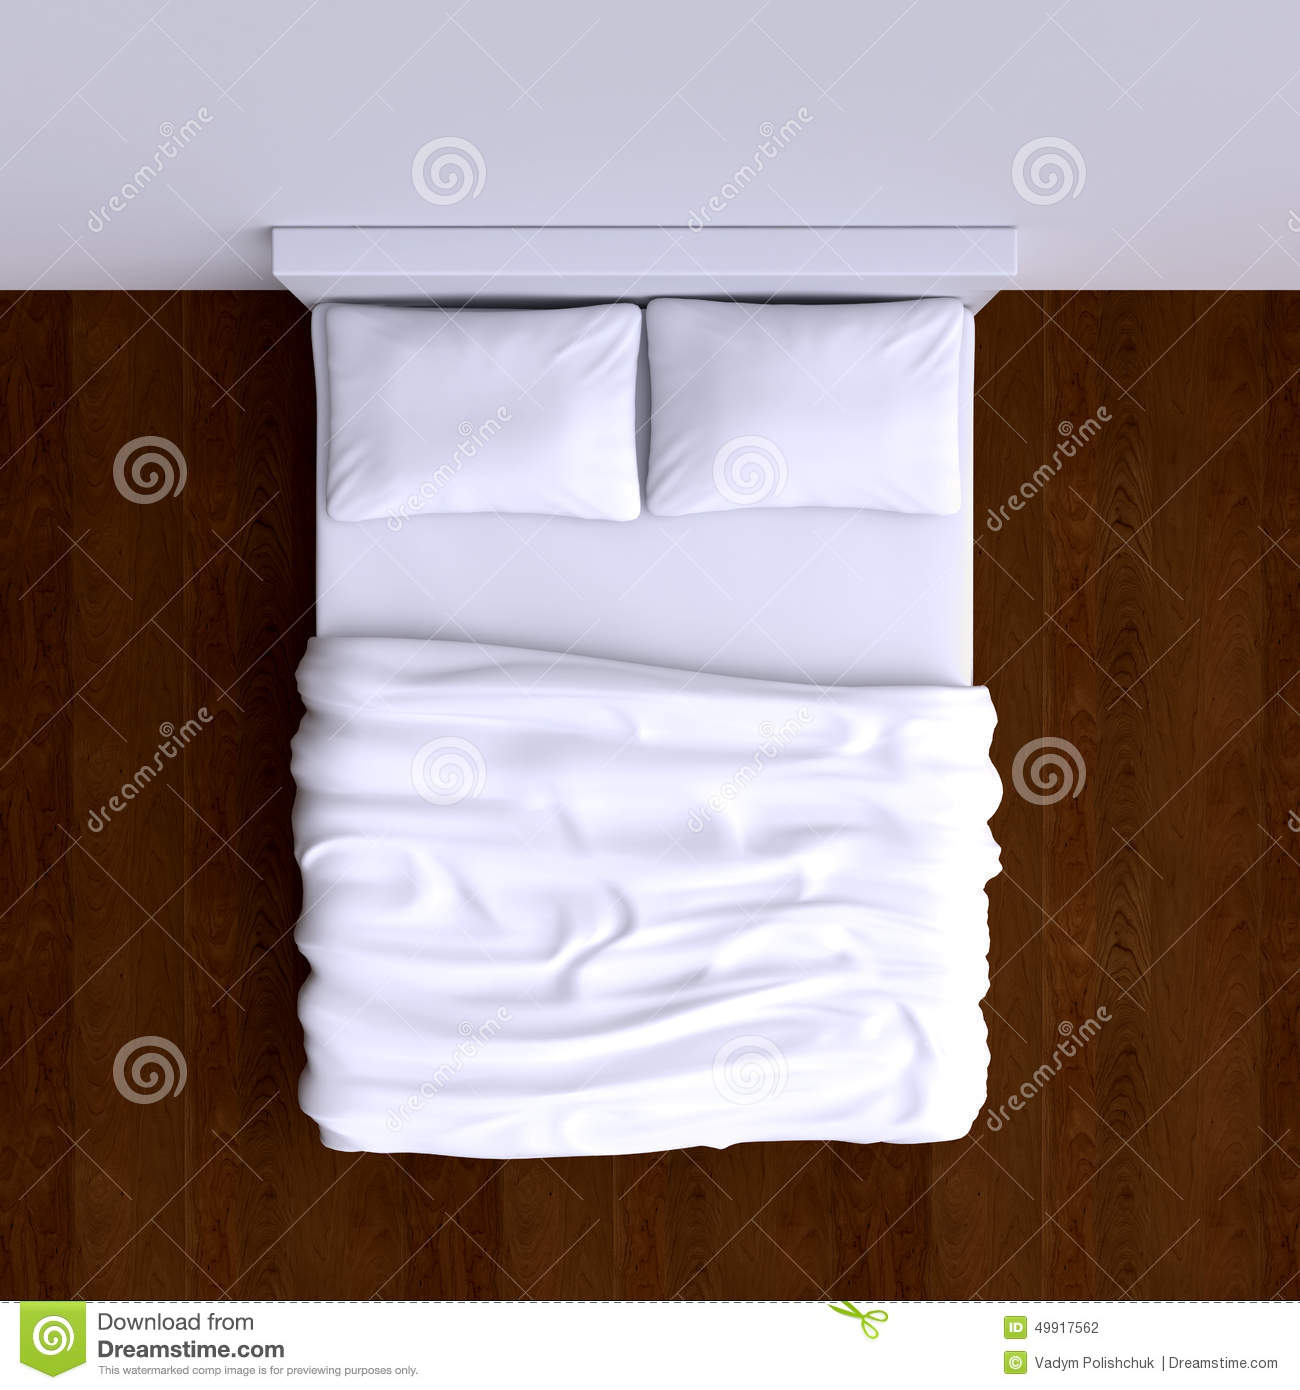 Bed With Pillows And A Blanket In The Corner Room 3d